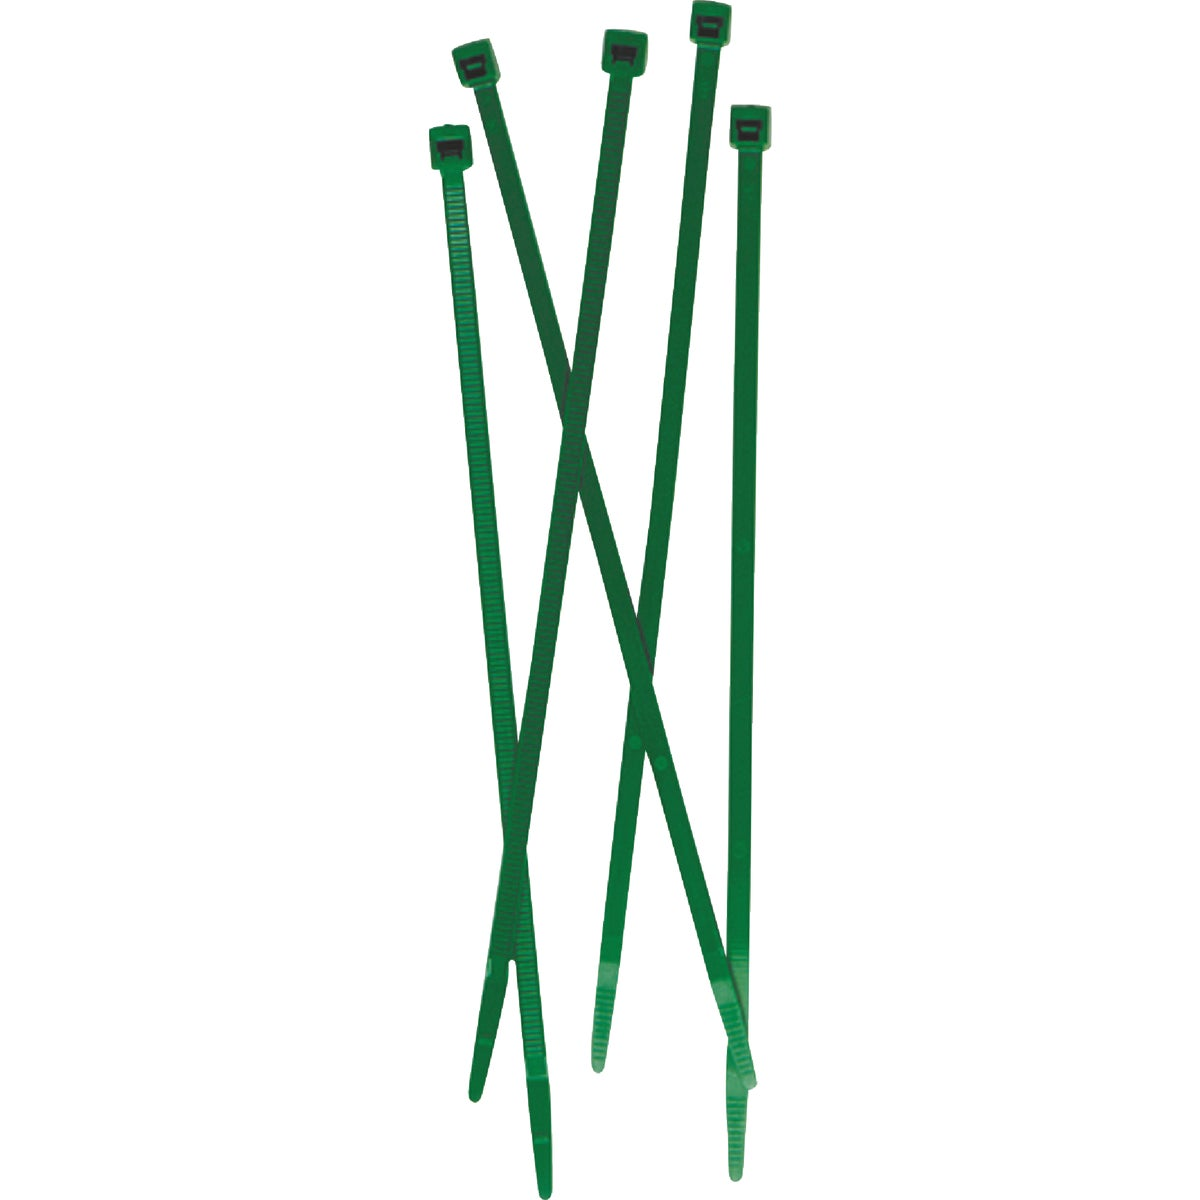 "50PC 7"" GREEN FENCE TIES - 120063 by Tenax Corporation"